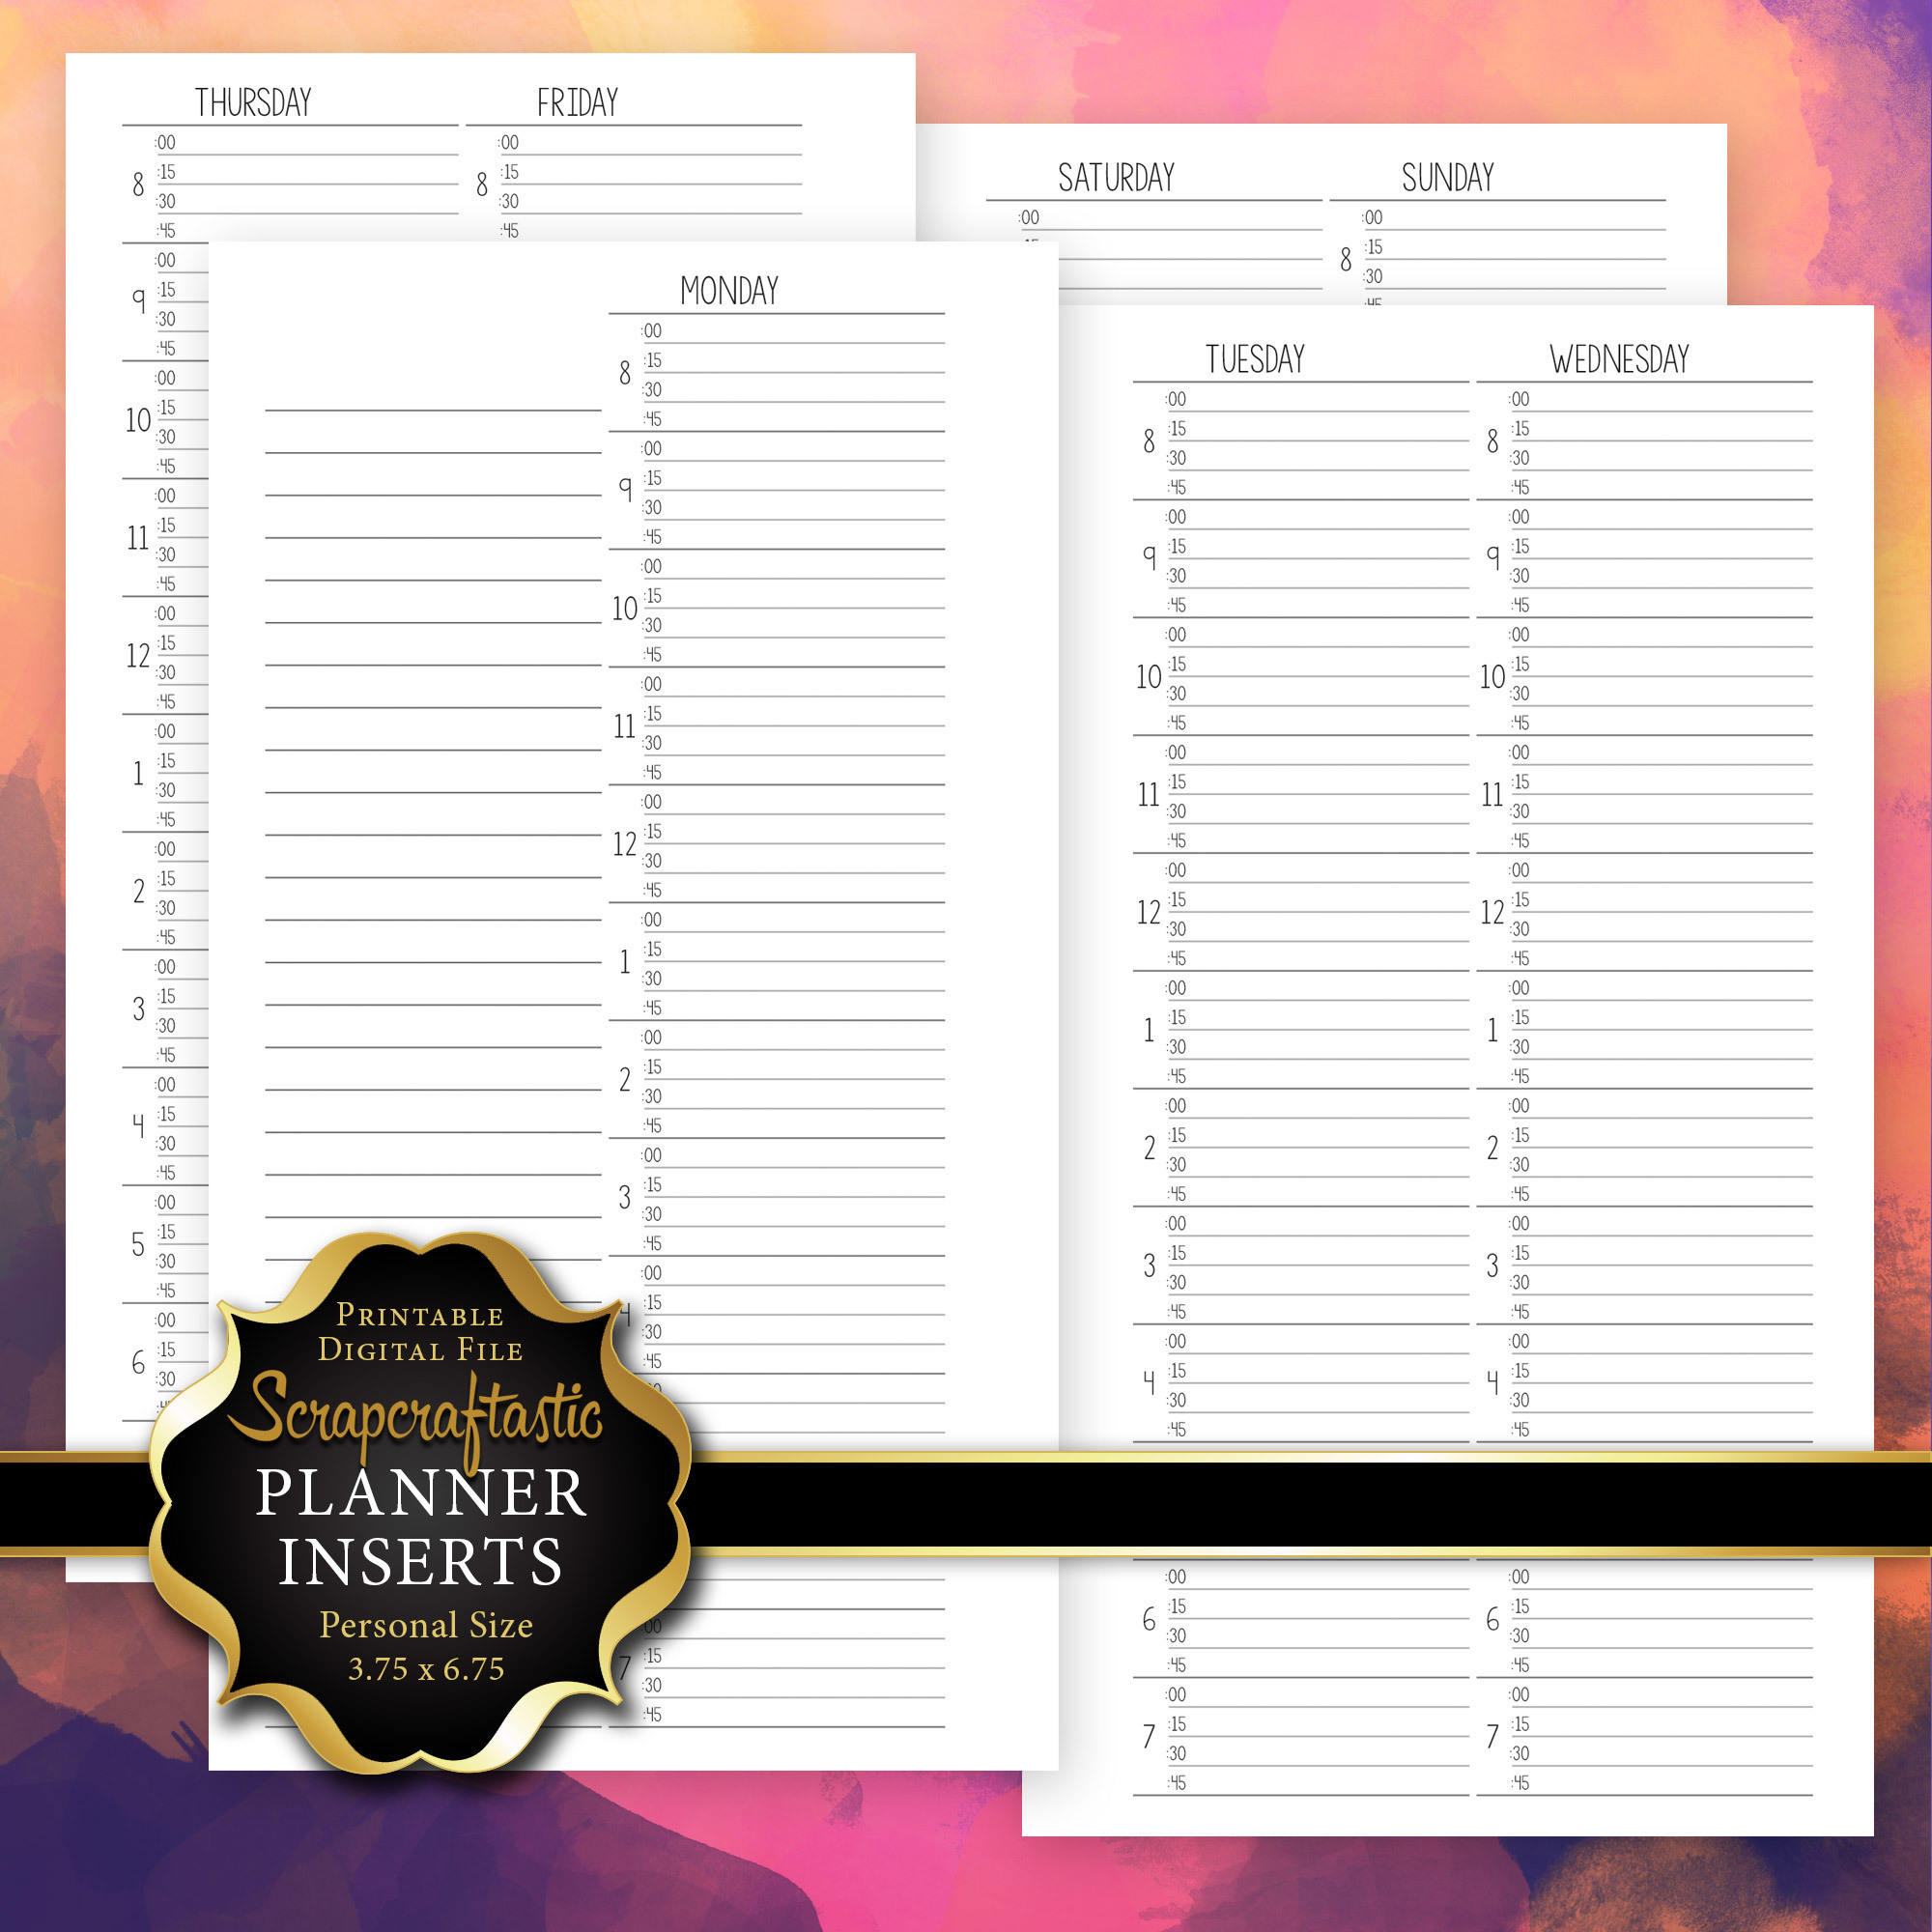 WO4P Quarter Hour Personal Printable Planner Insert 00226